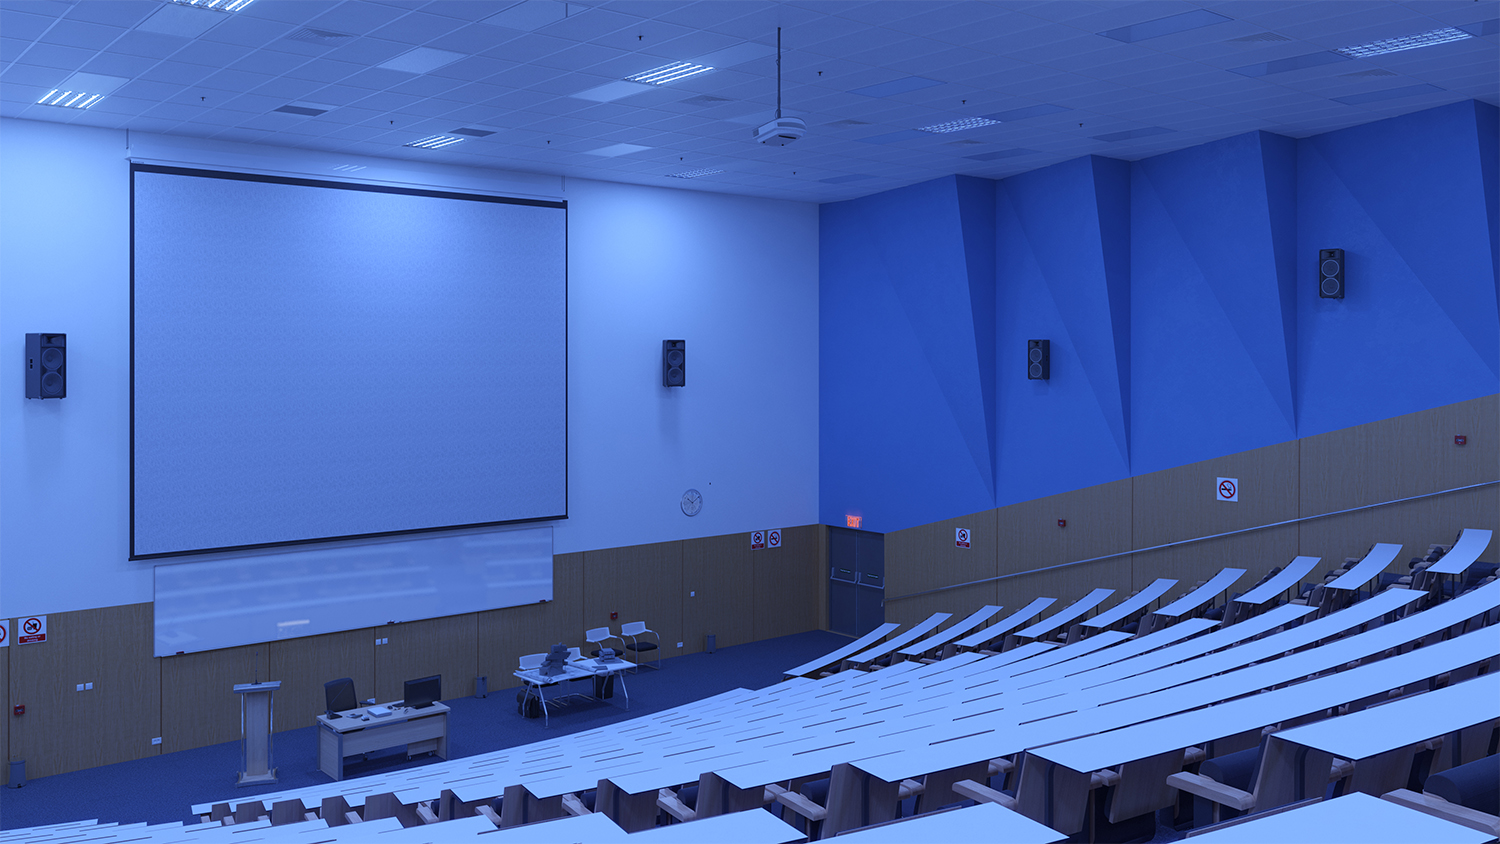 UVC for universities lecture halls